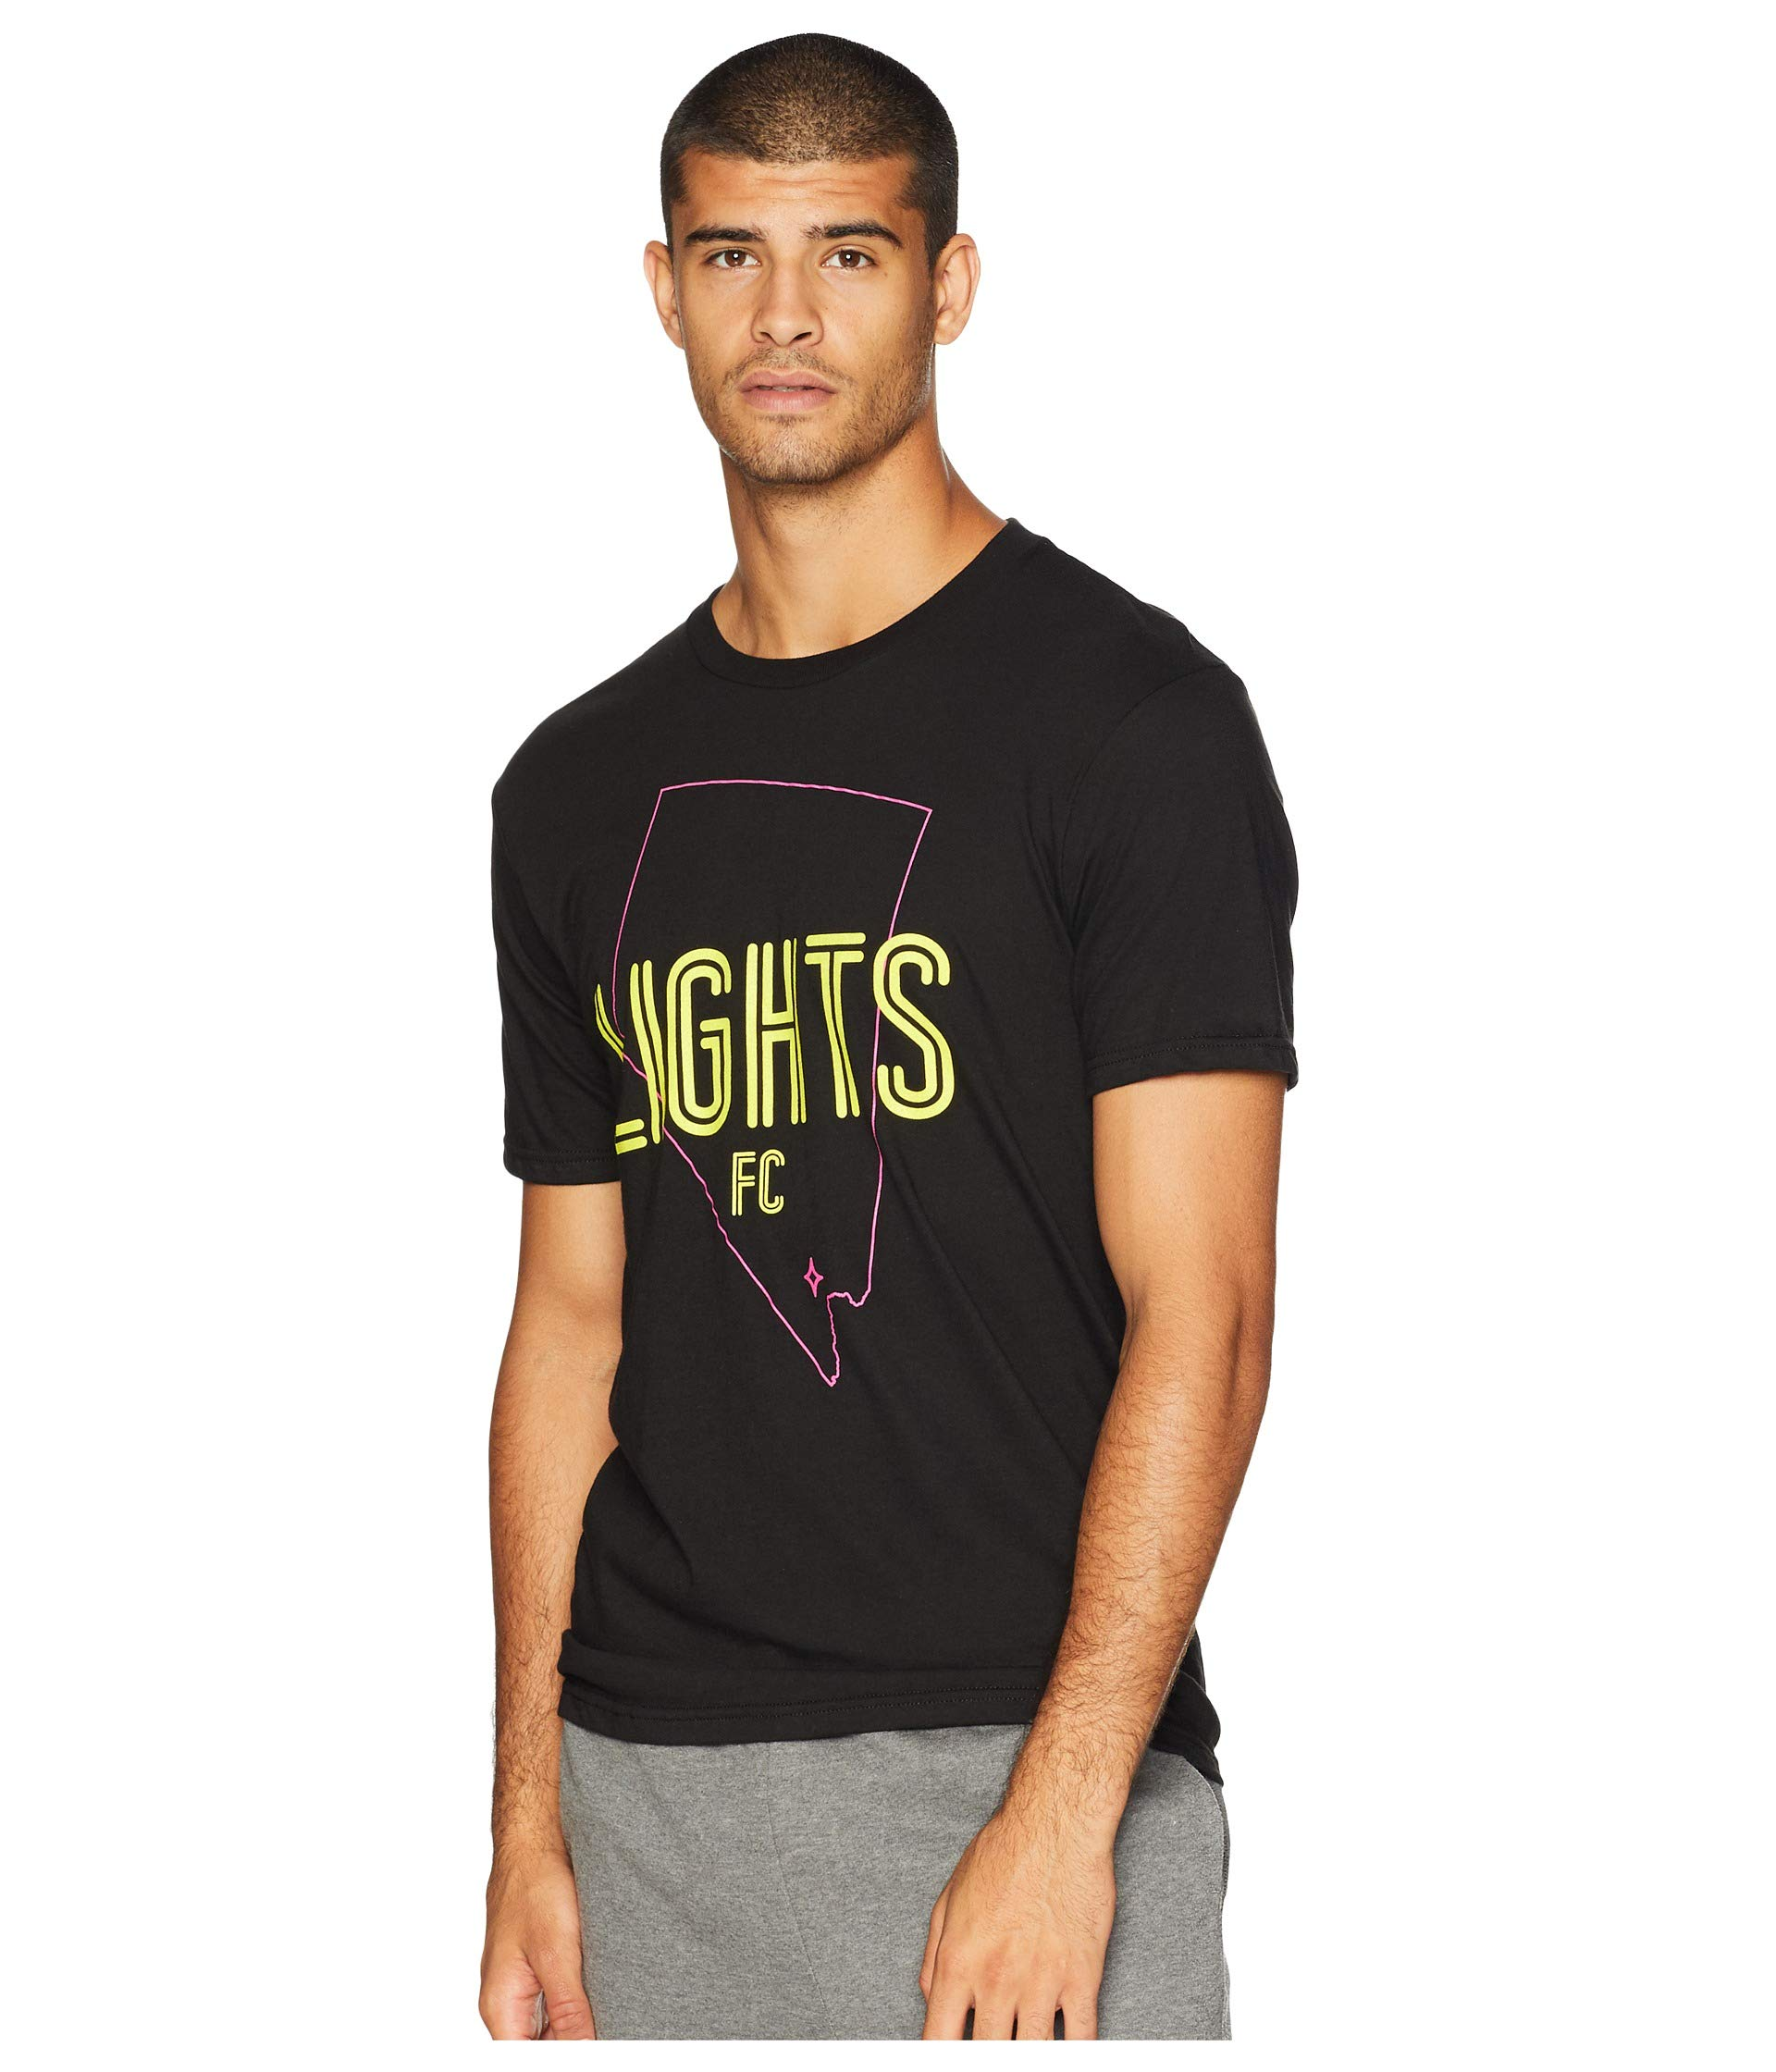 Vegas Fc Tee Lights c F Black State Las ap8xq7dx